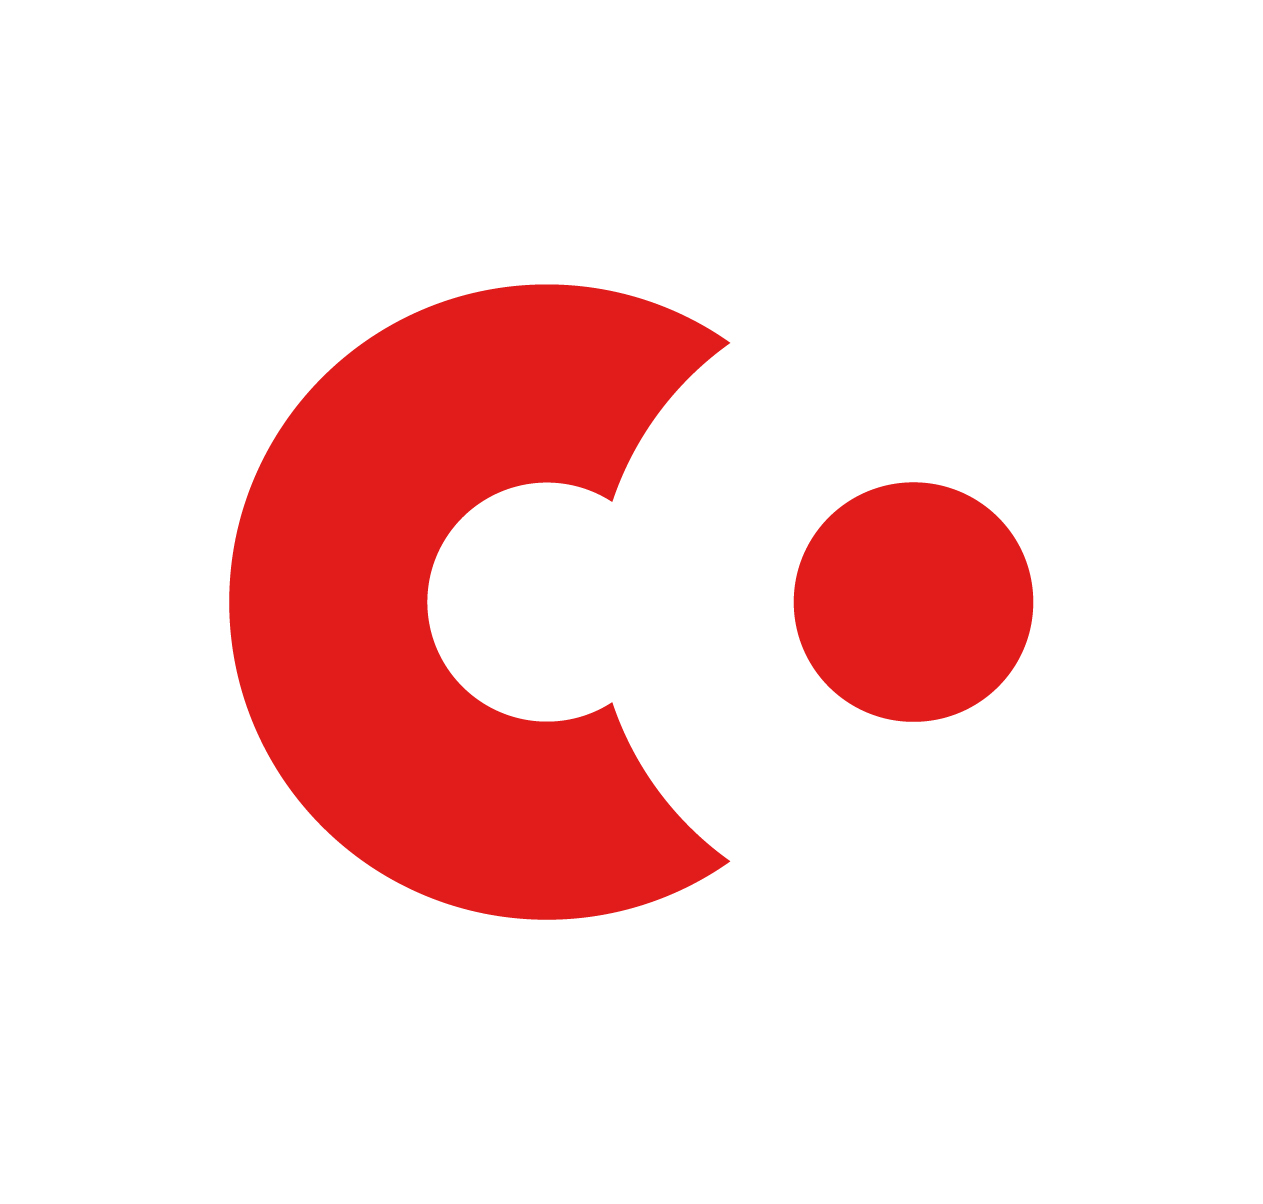 Corda Blockchain [DEPRECATED]